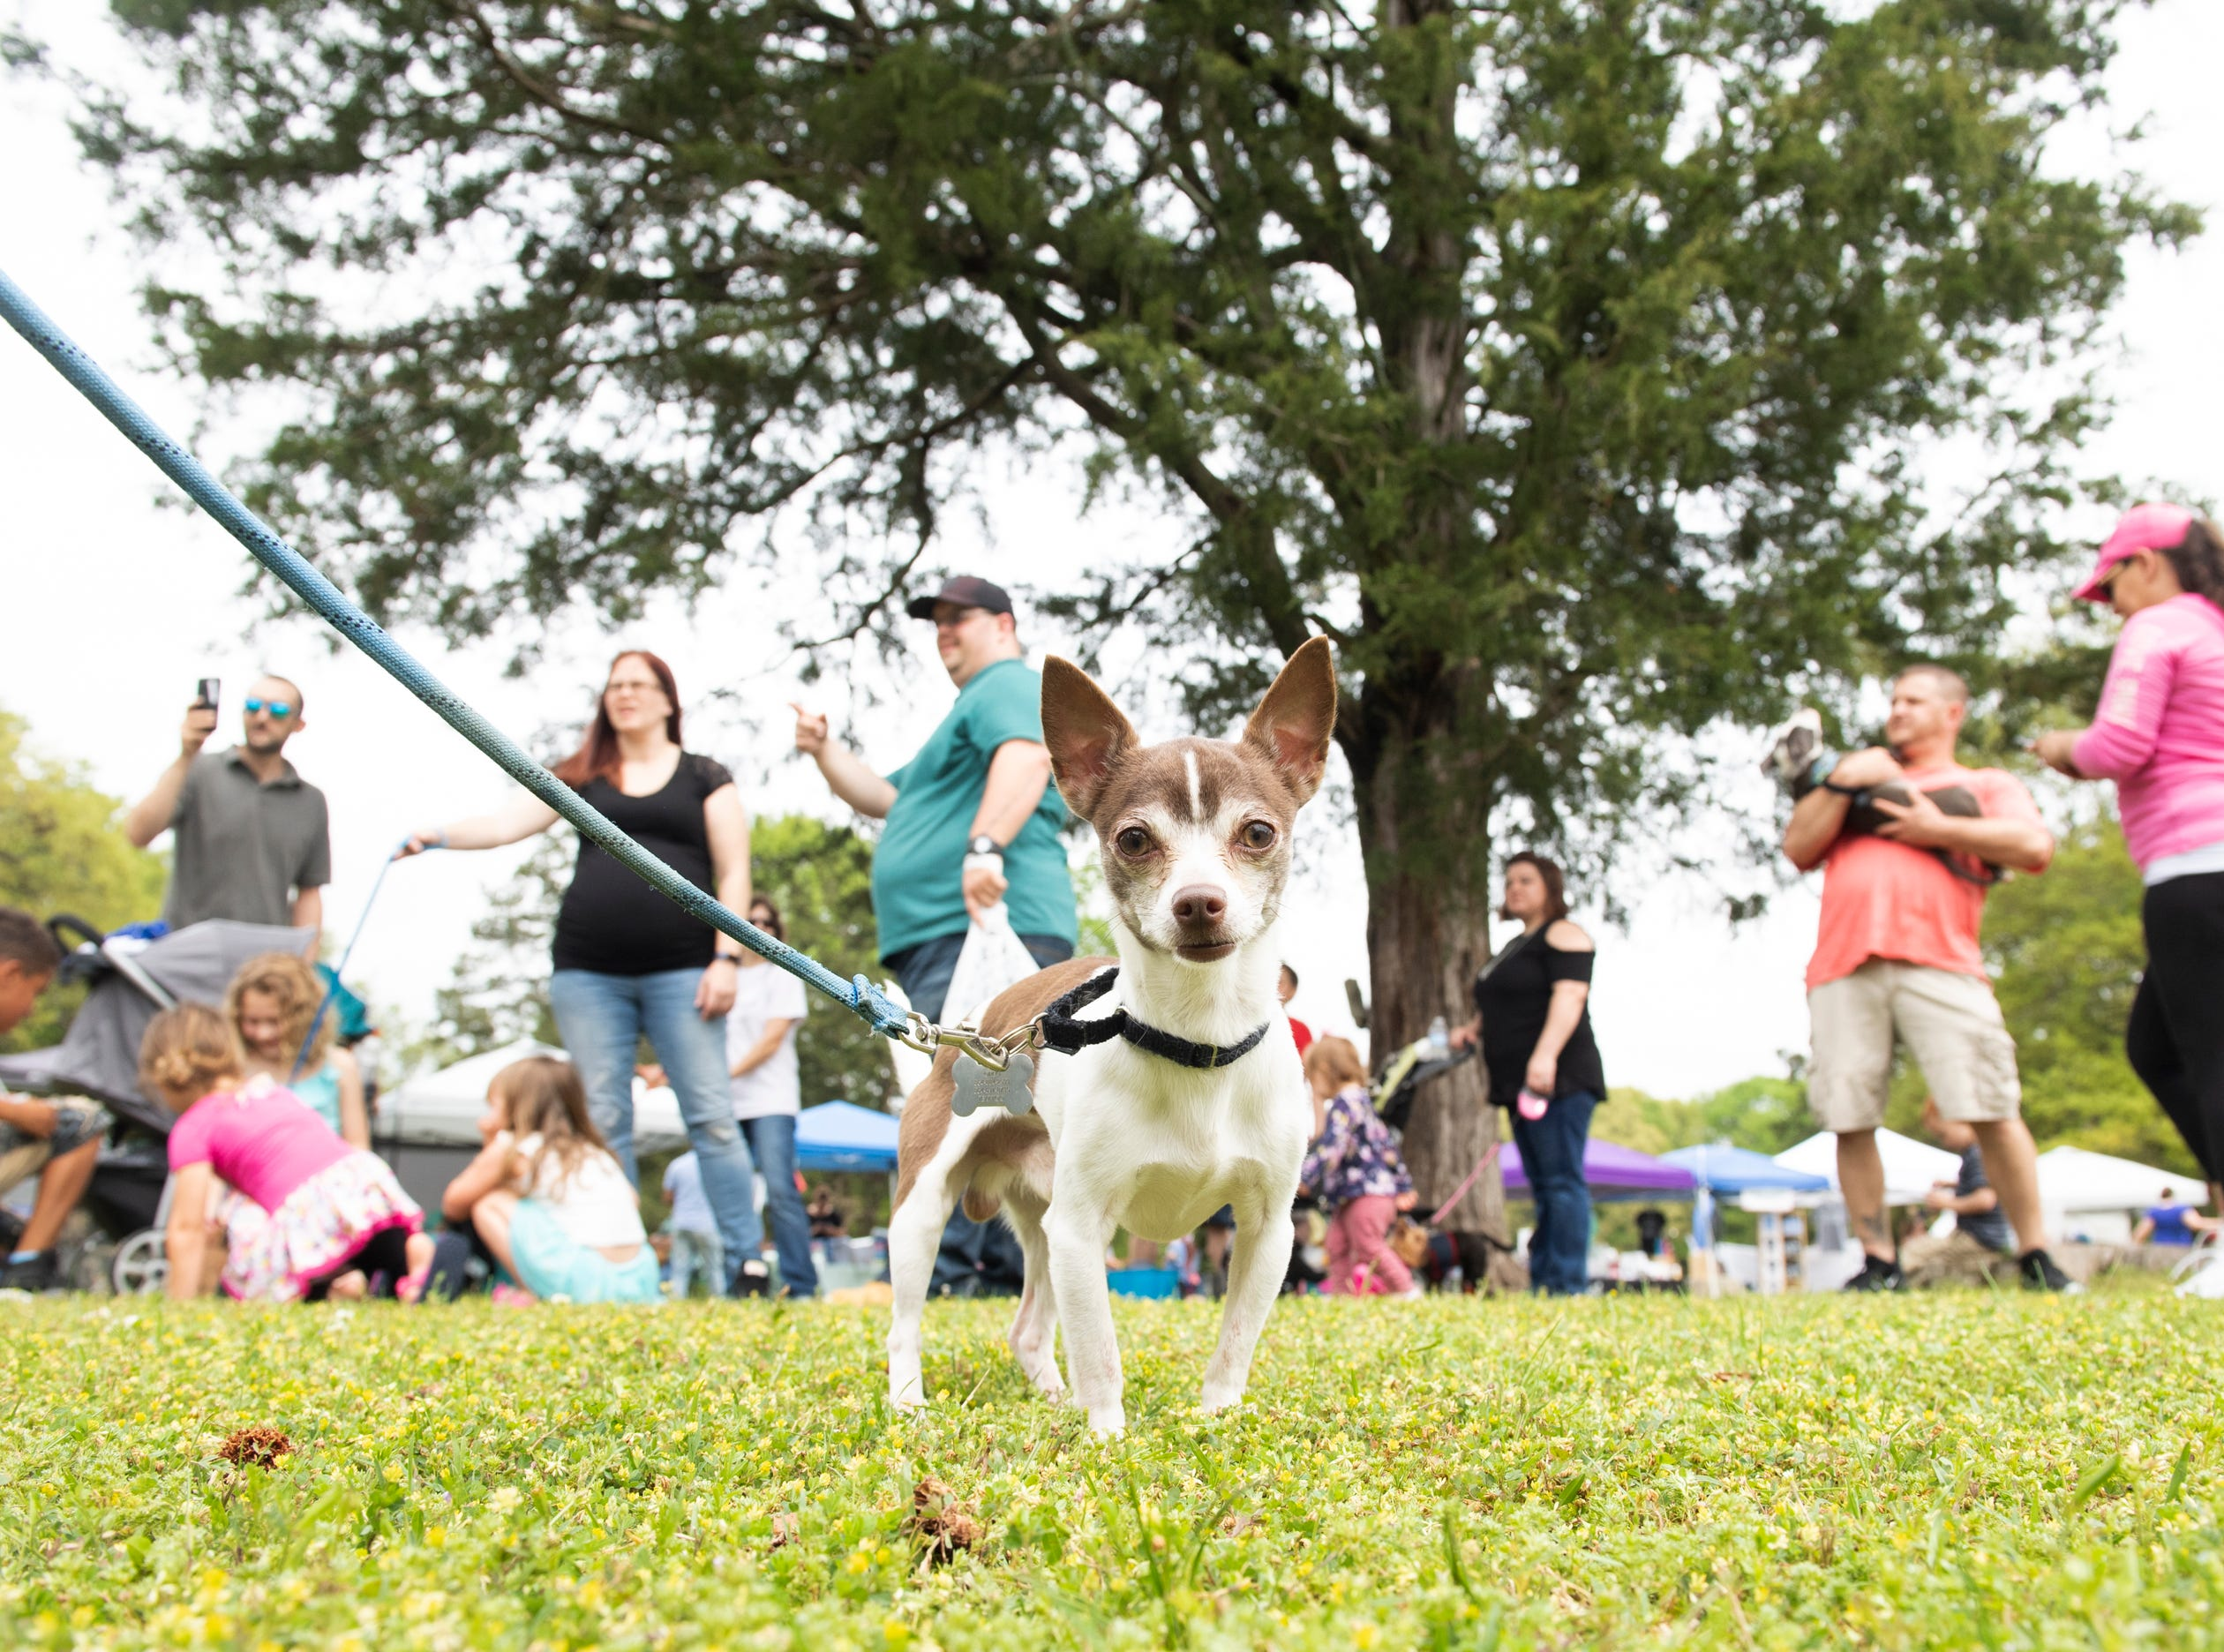 Dogs and owners, including Oreo (center), attend Paws for a Cause at Simpsonville City Park Saturday, April 13, 2019.